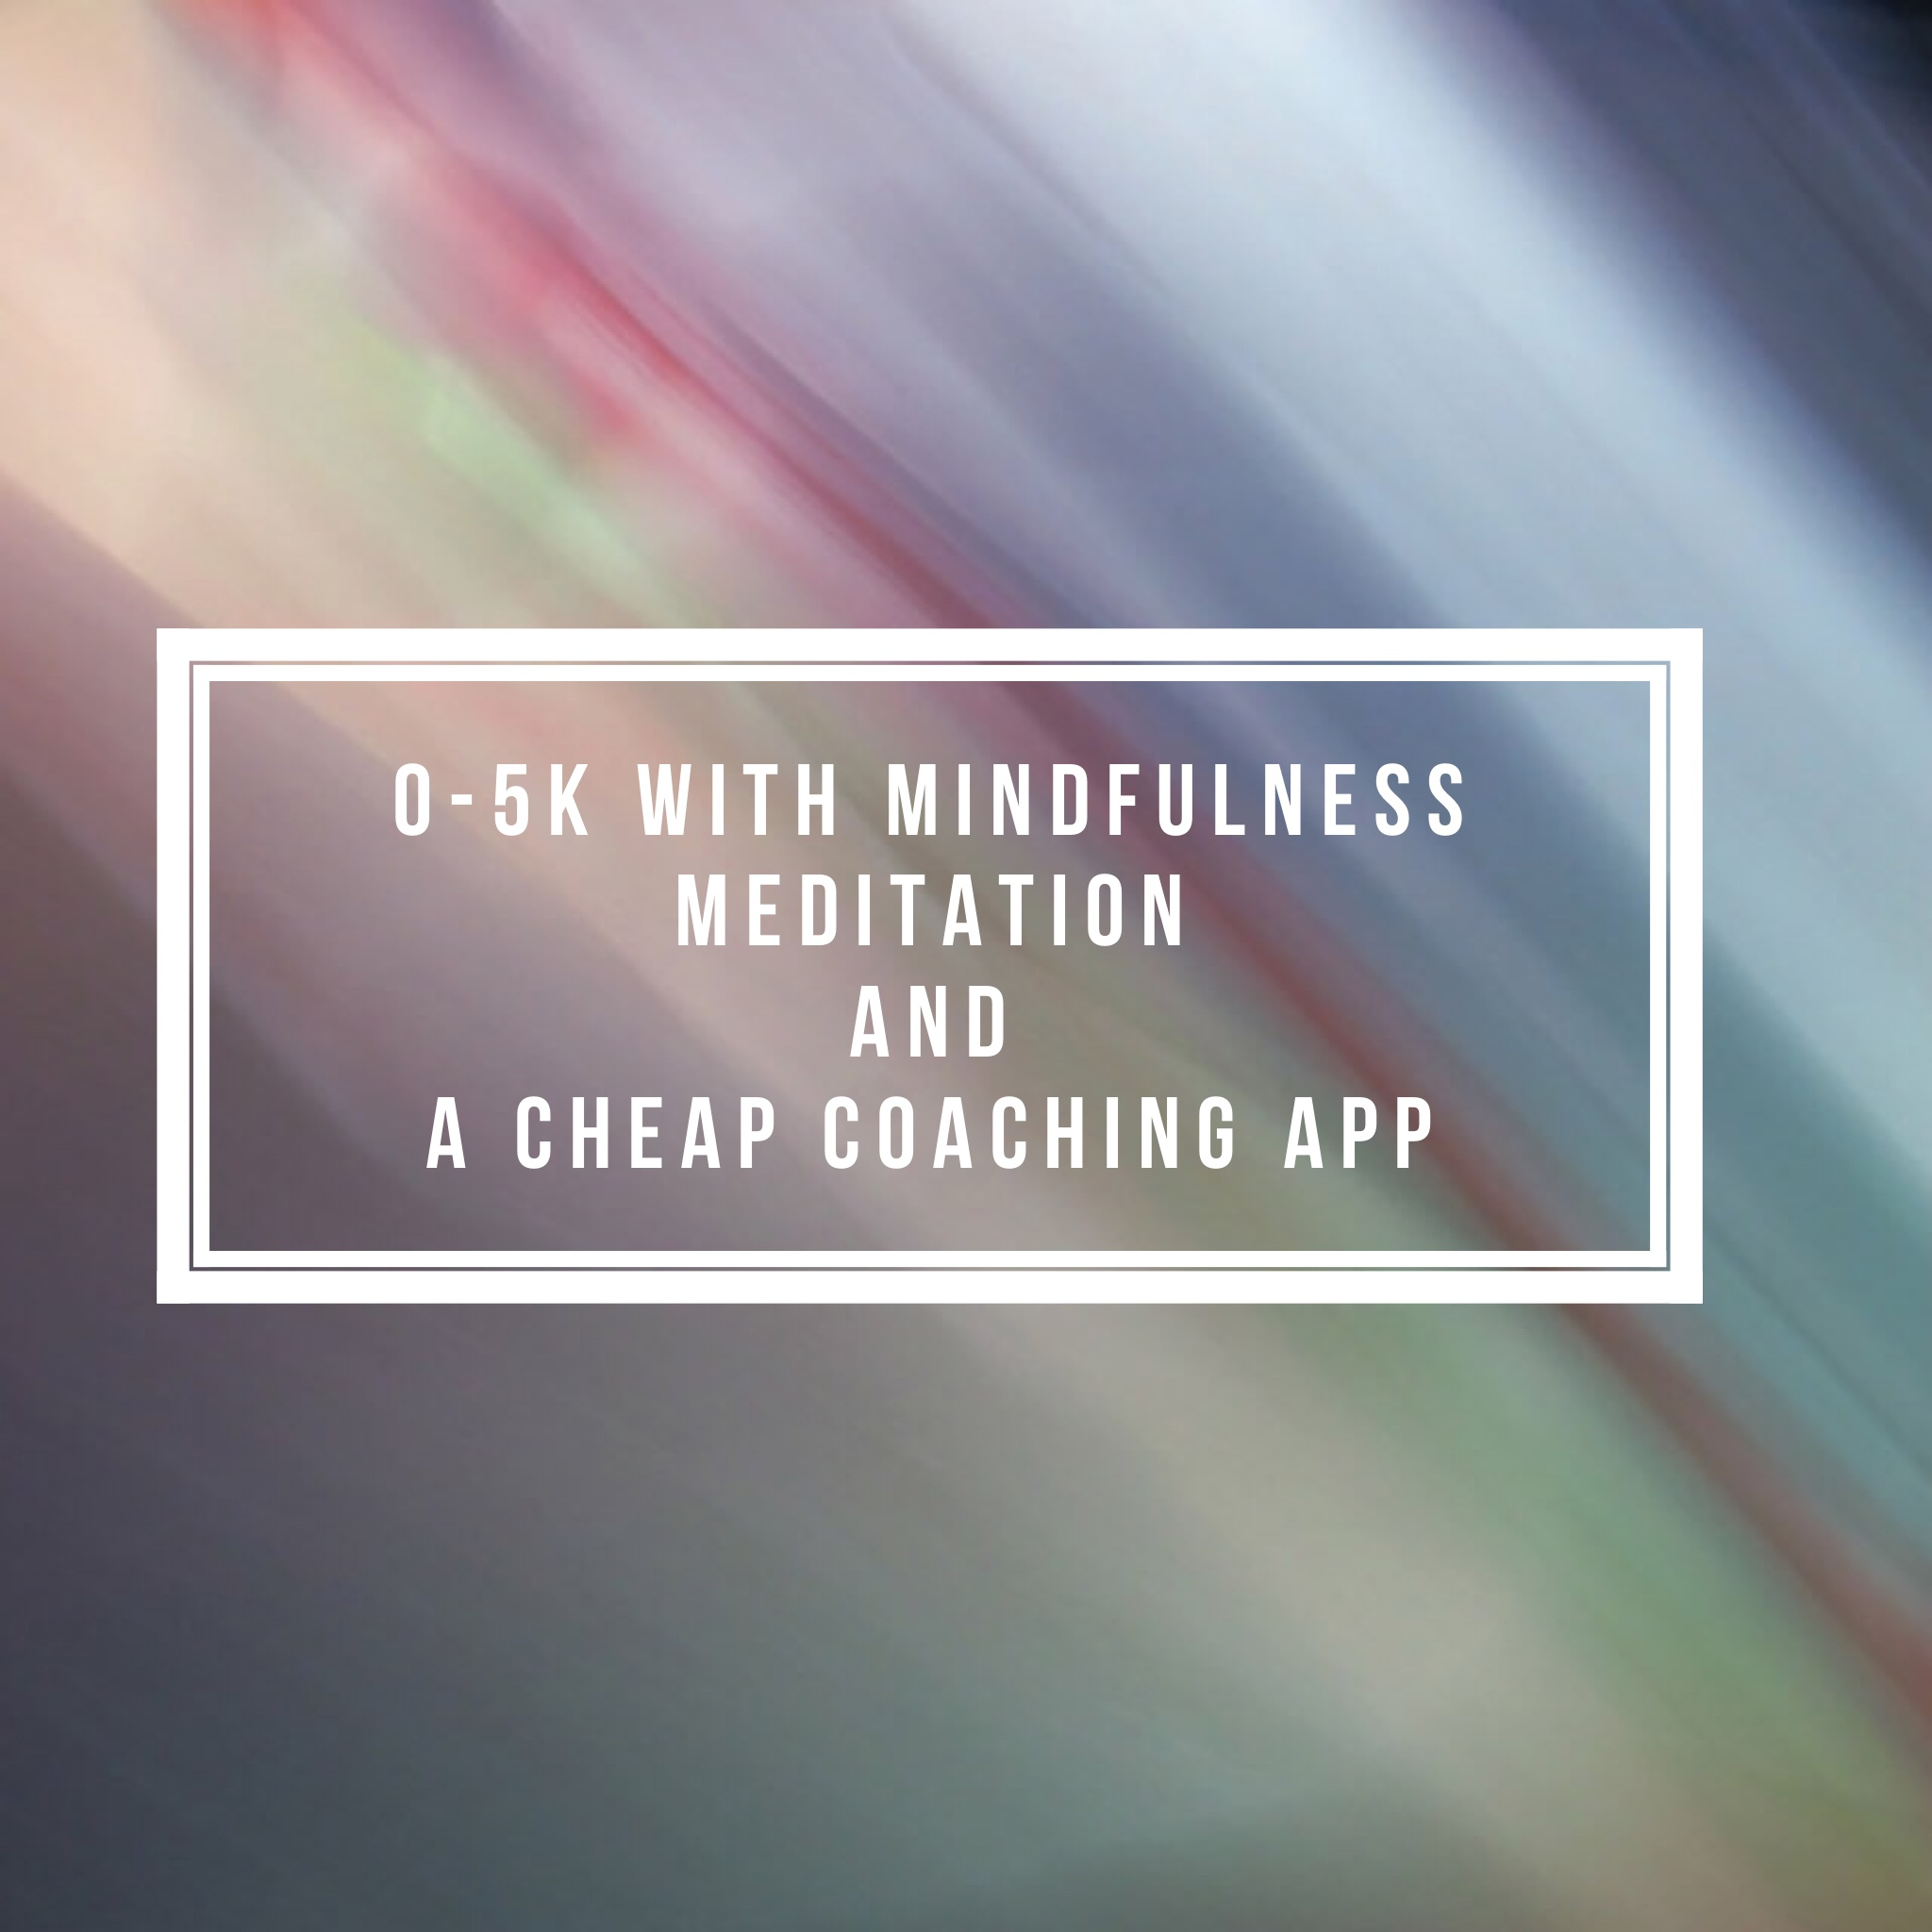 0-5k with Mindfulness Meditation and a Cheap Coaching App